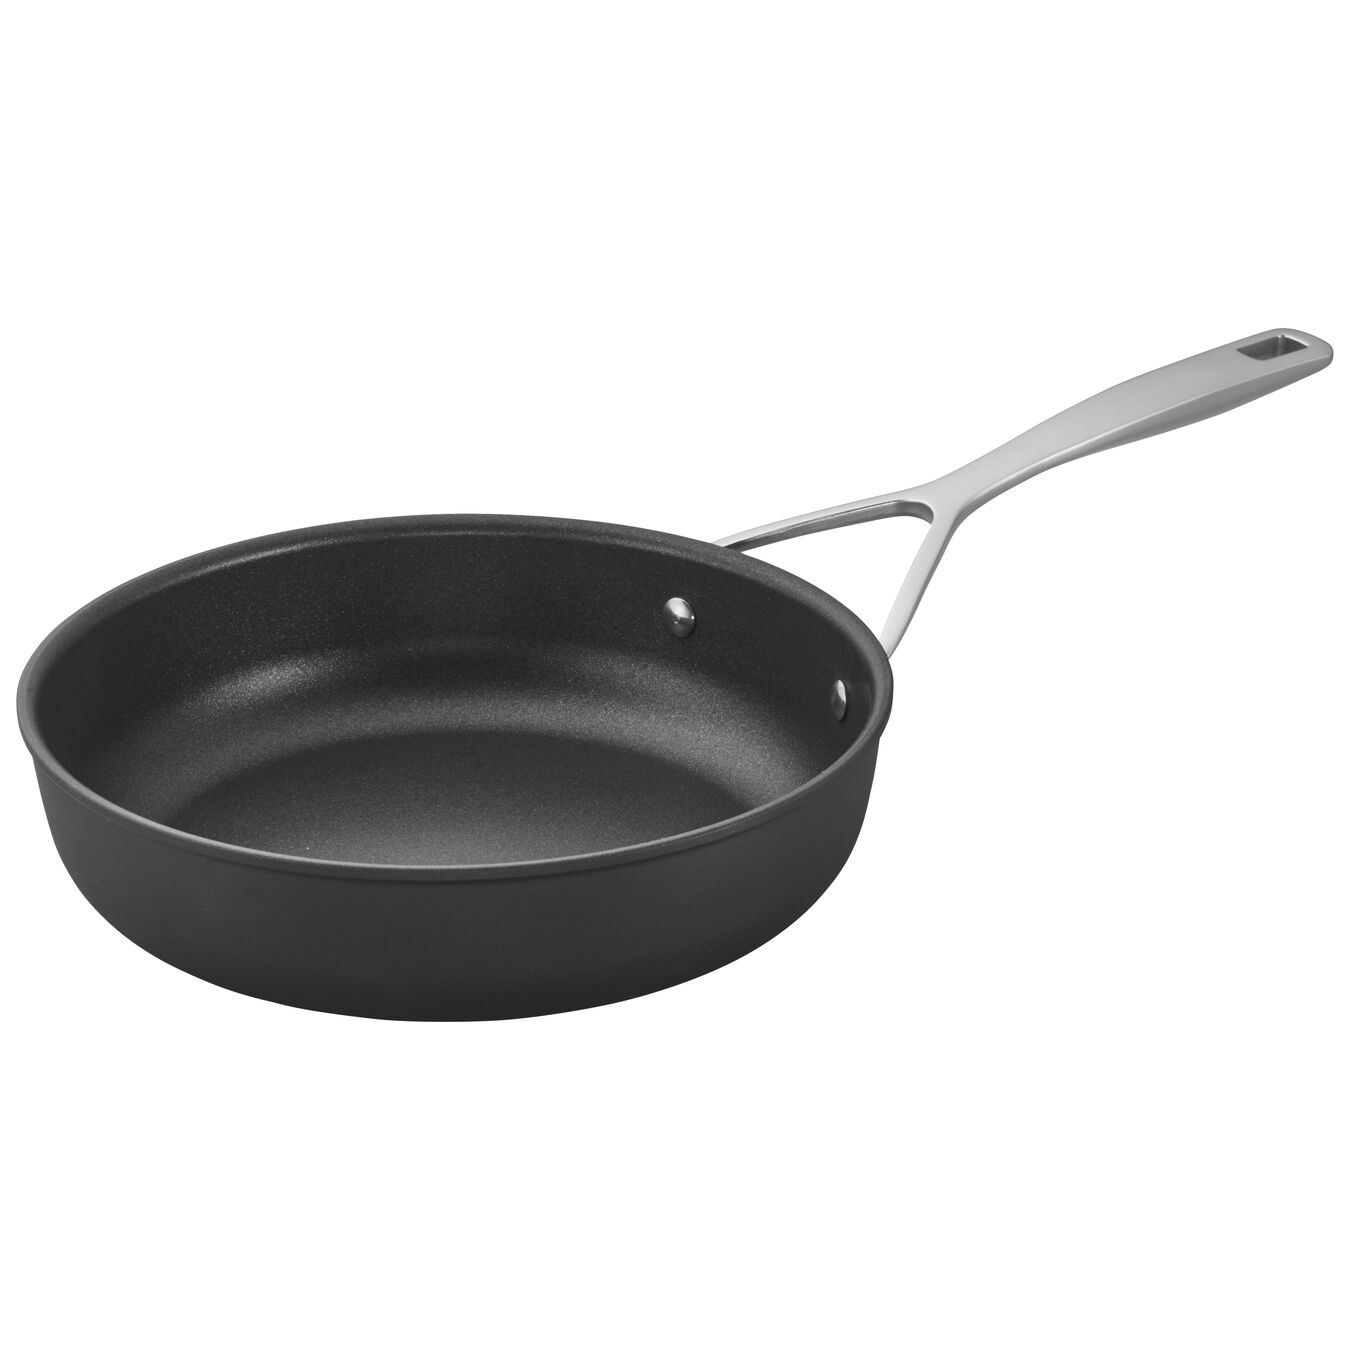 9.5-inch, Aluminum, Non-stick Frying pan high-sided,,large 4